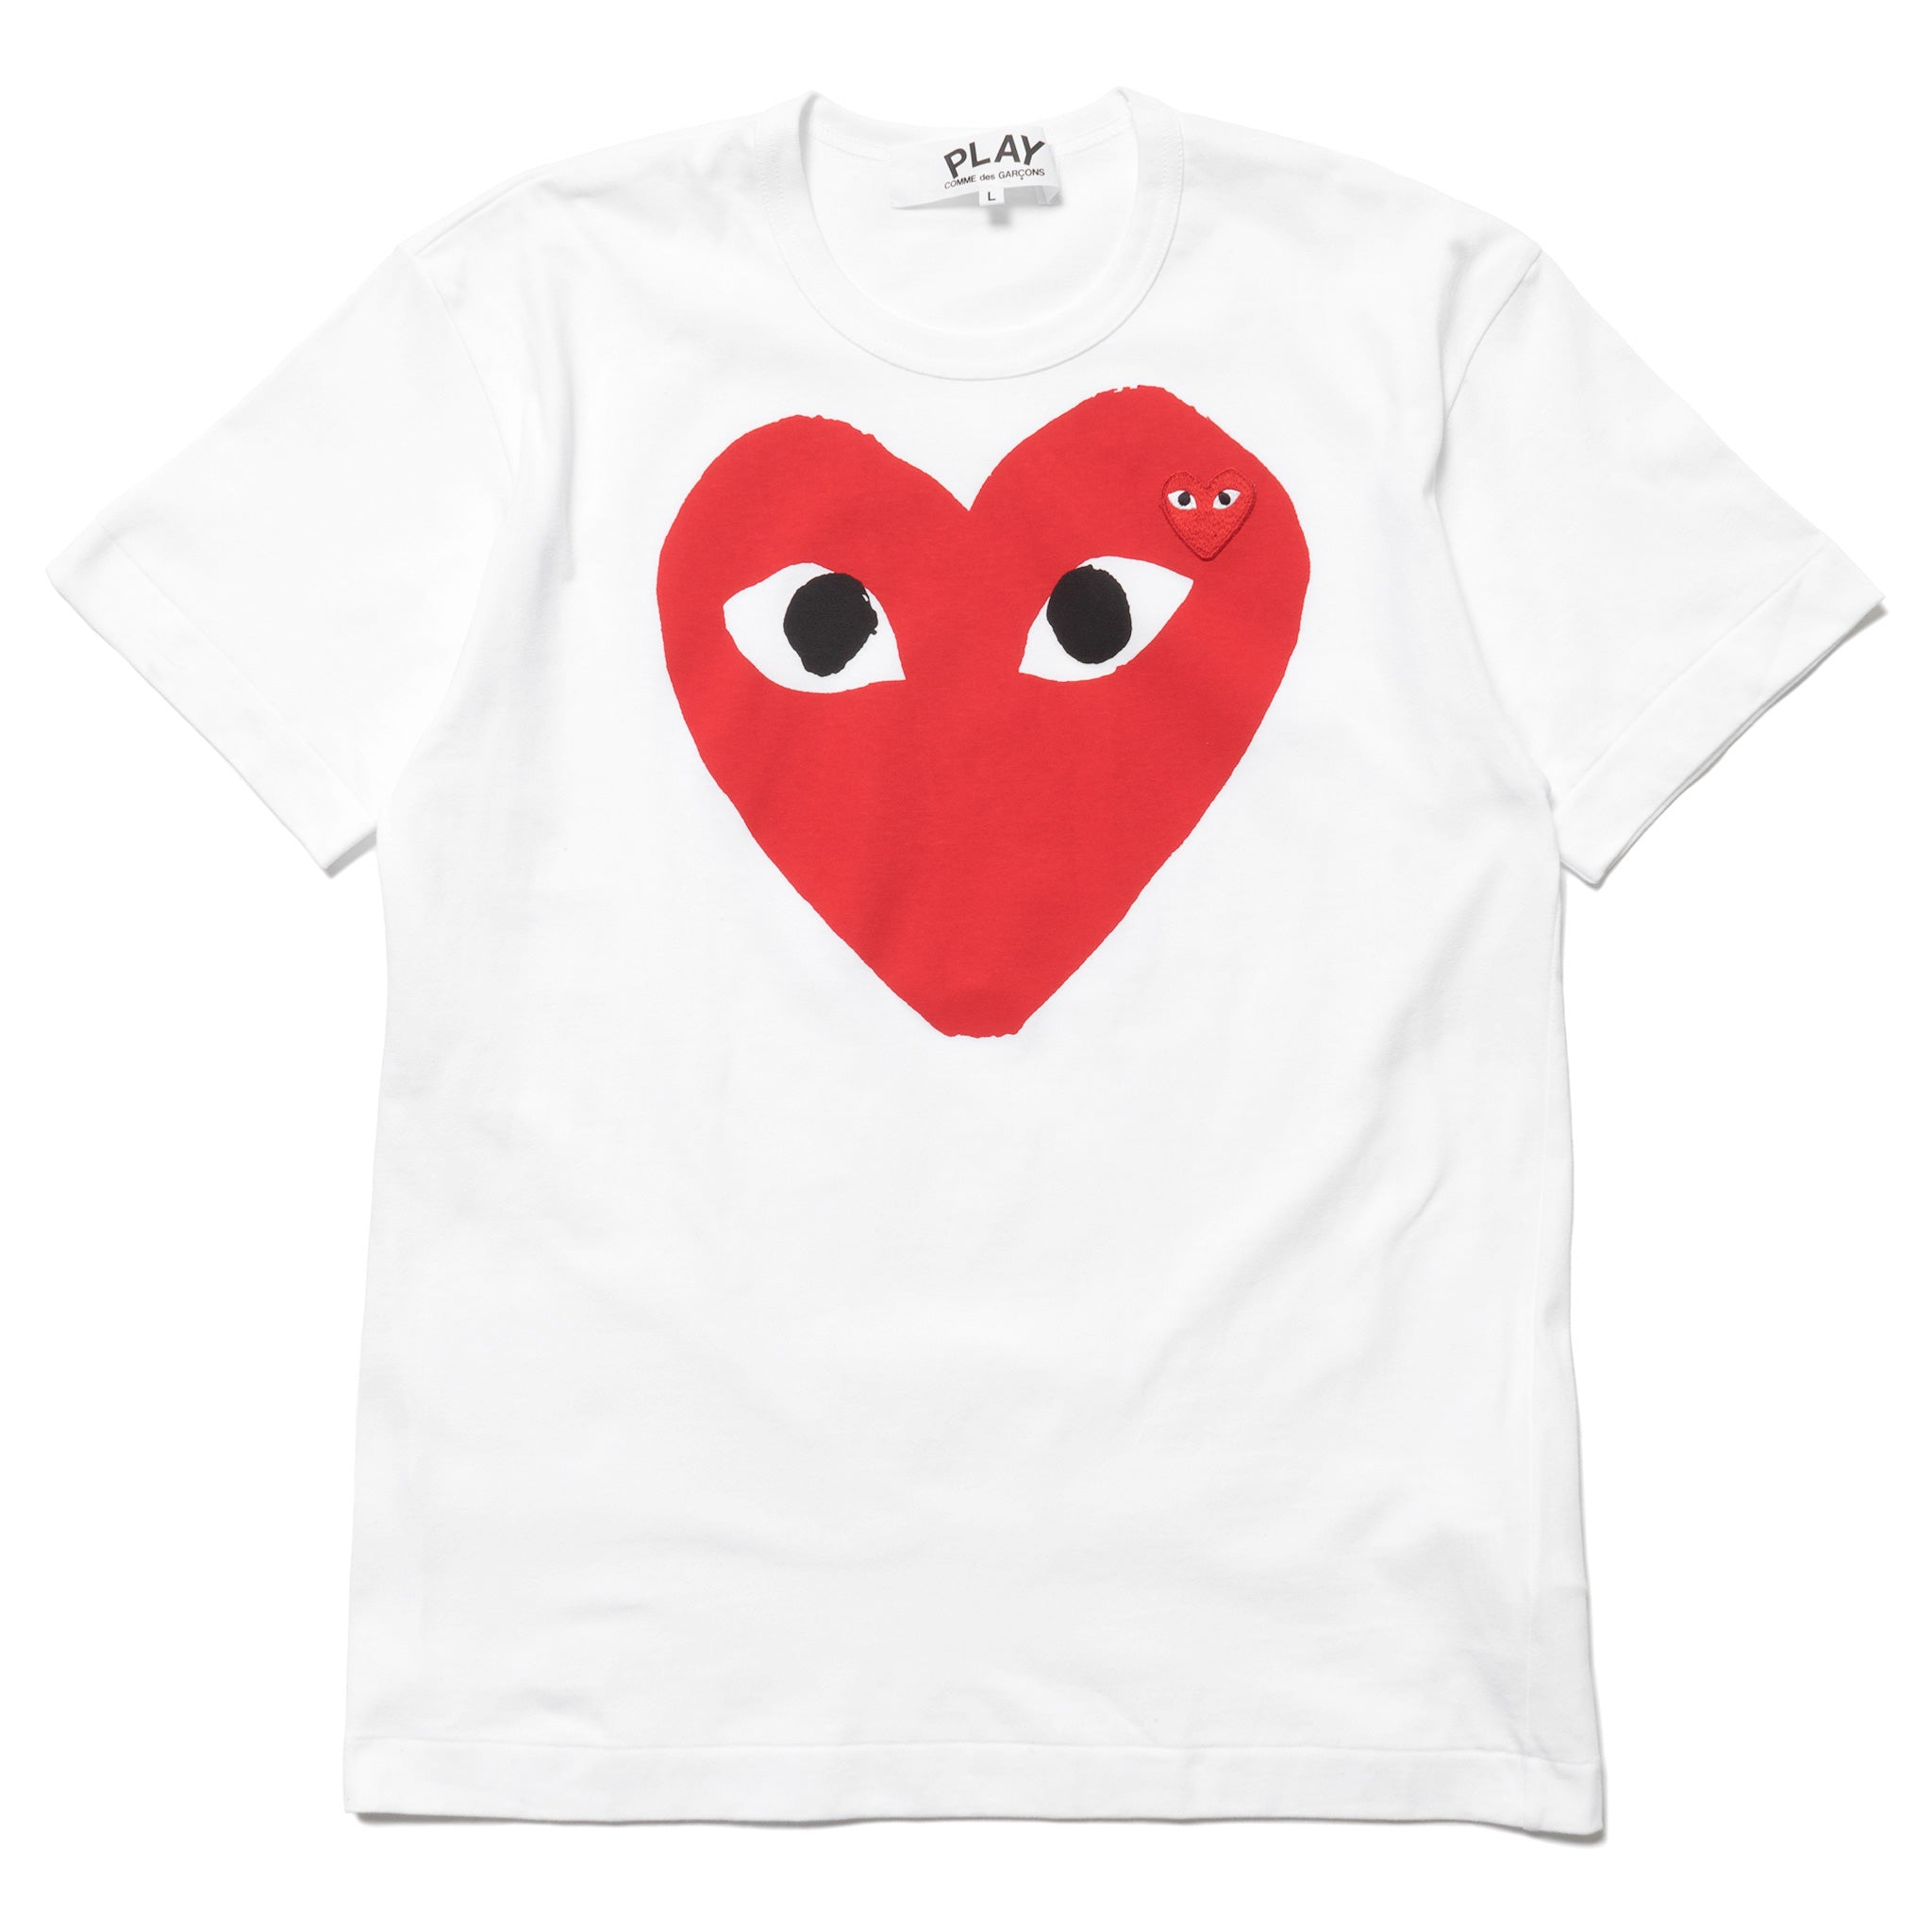 06ec03adca00 Comme-Des-Garcons-Play-Print-Red-Heart-Red-Emblem-Tee- T026 -WHITE-1.jpg v 1518818873